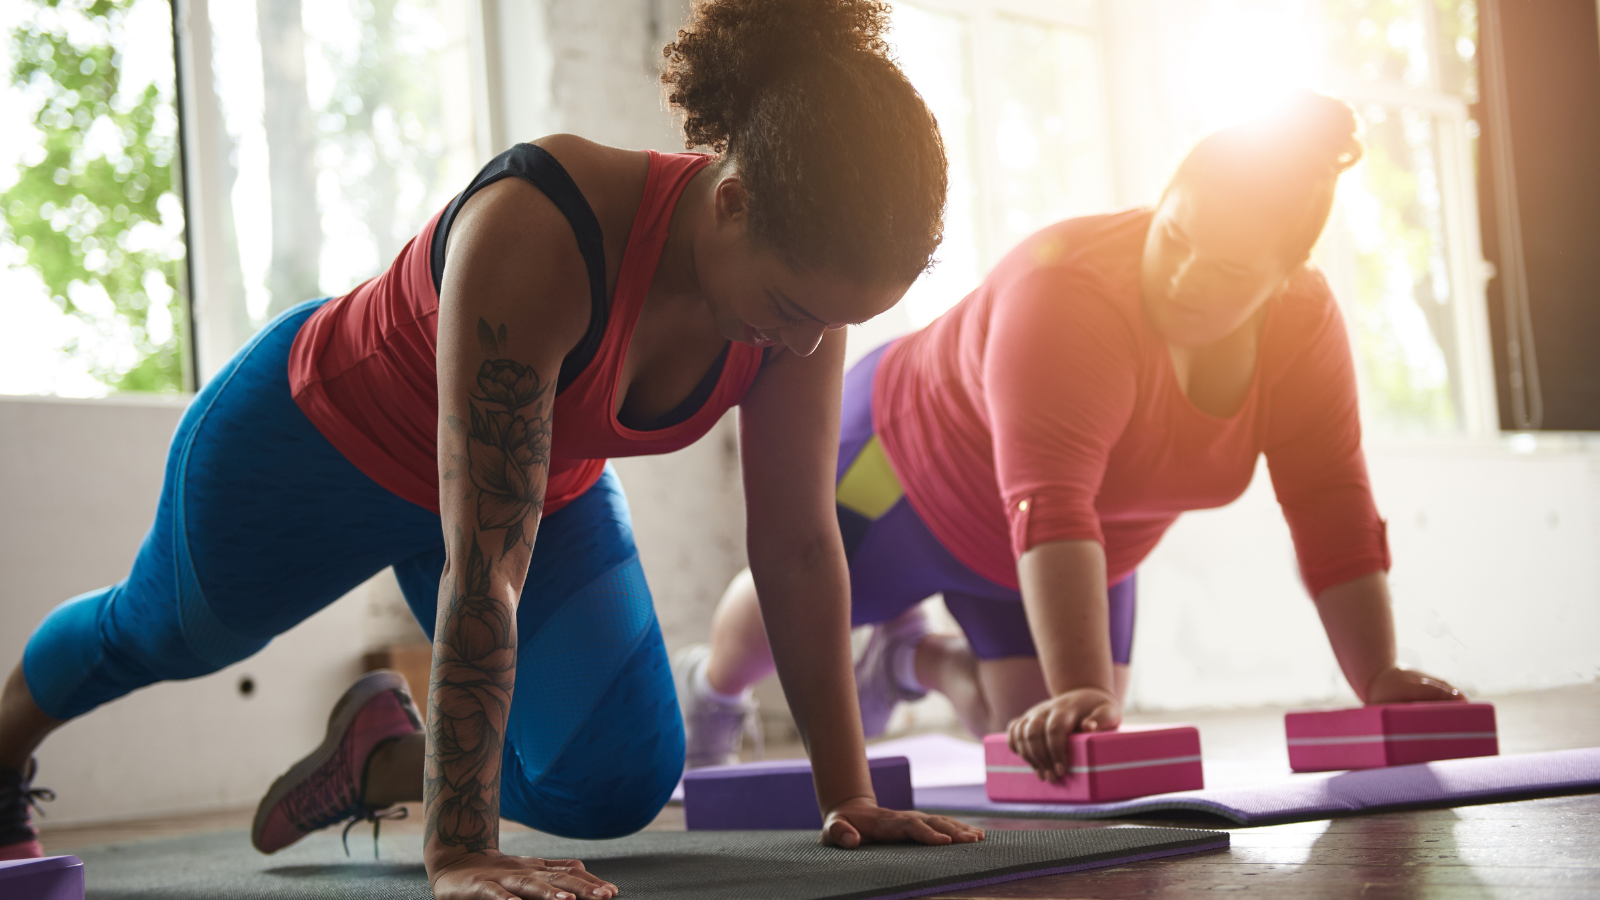 Beginner yoga tips to deepen your body-positive yoga practice with mindfulness techniques